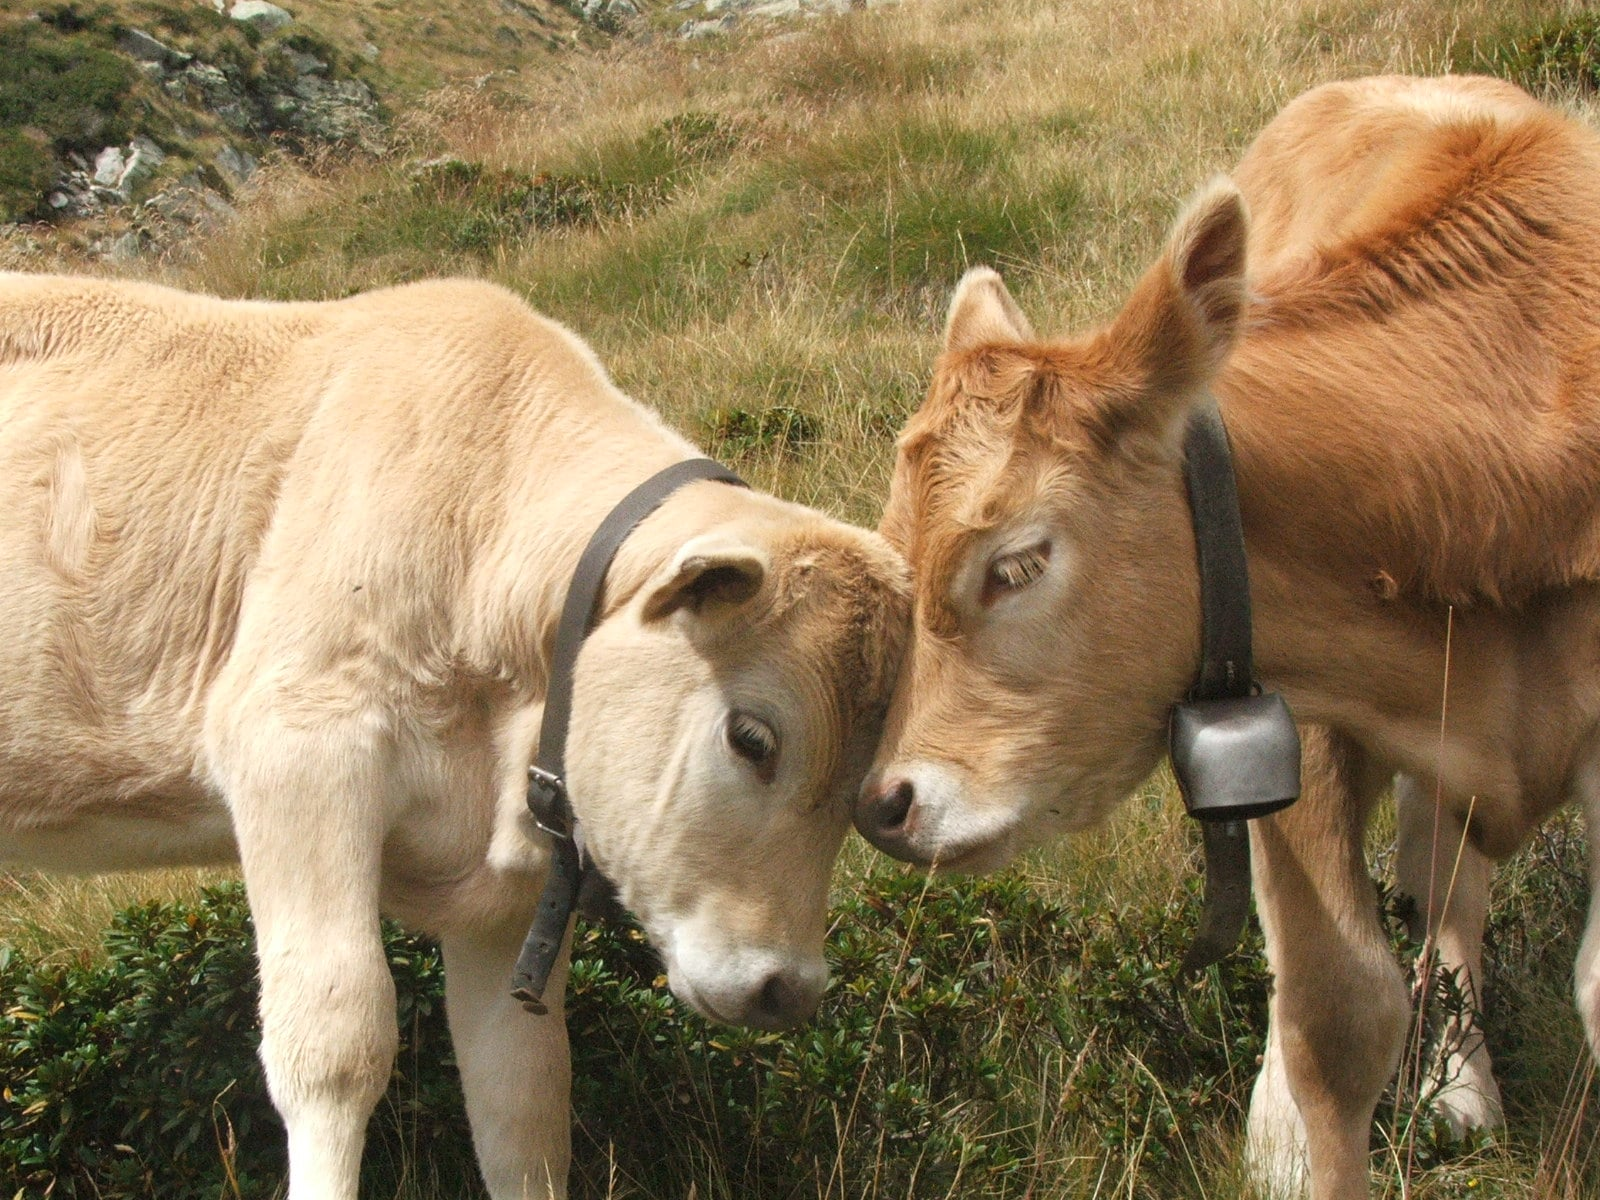 Two cows enjoying each others friendship